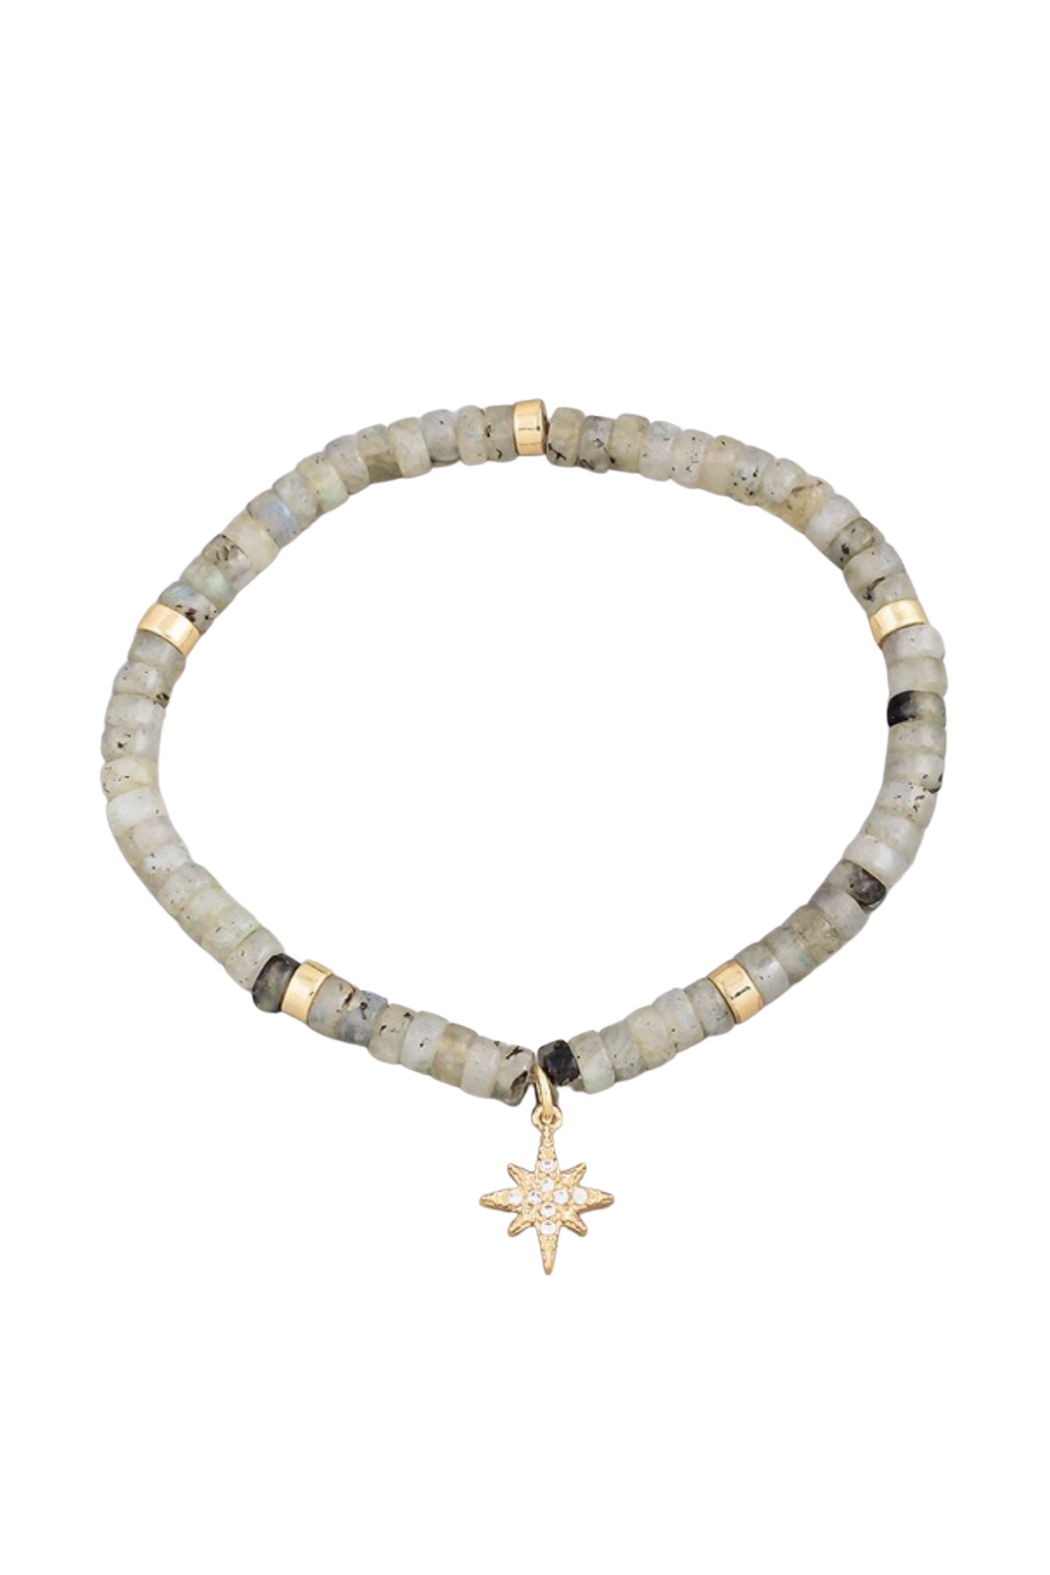 Fame Accessories Labradorite Stone Beaded North Star Charm Bracelet - Main Image